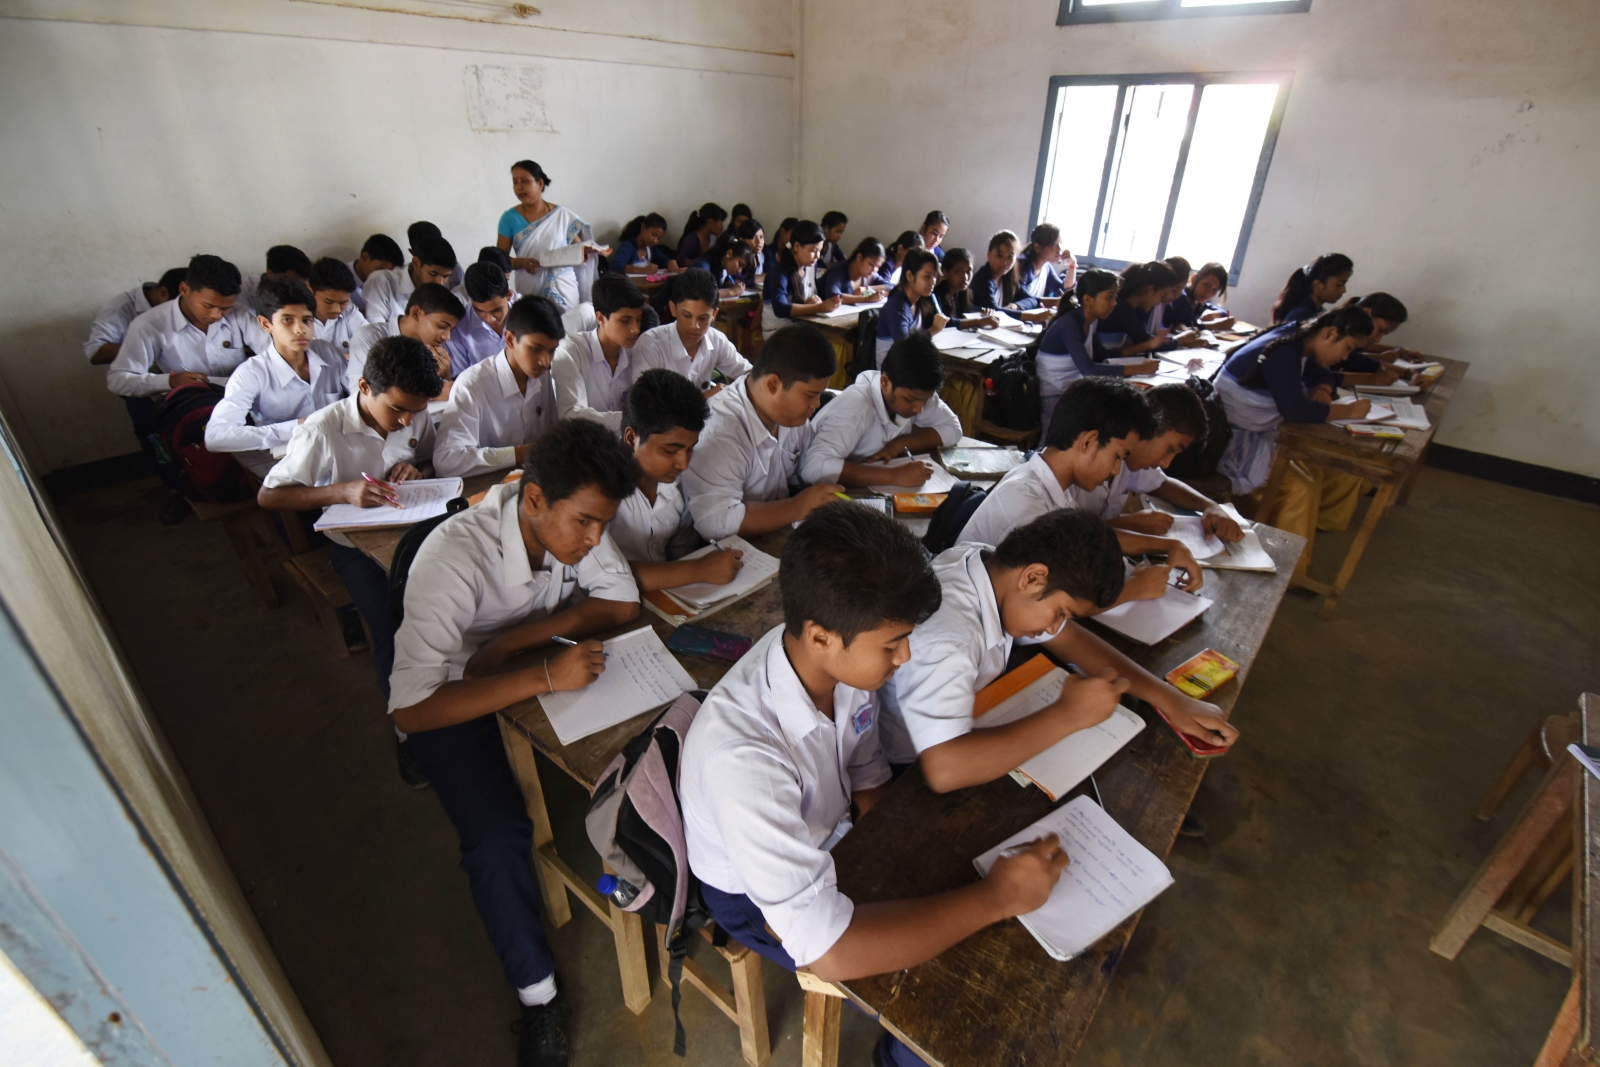 Indian students writing test